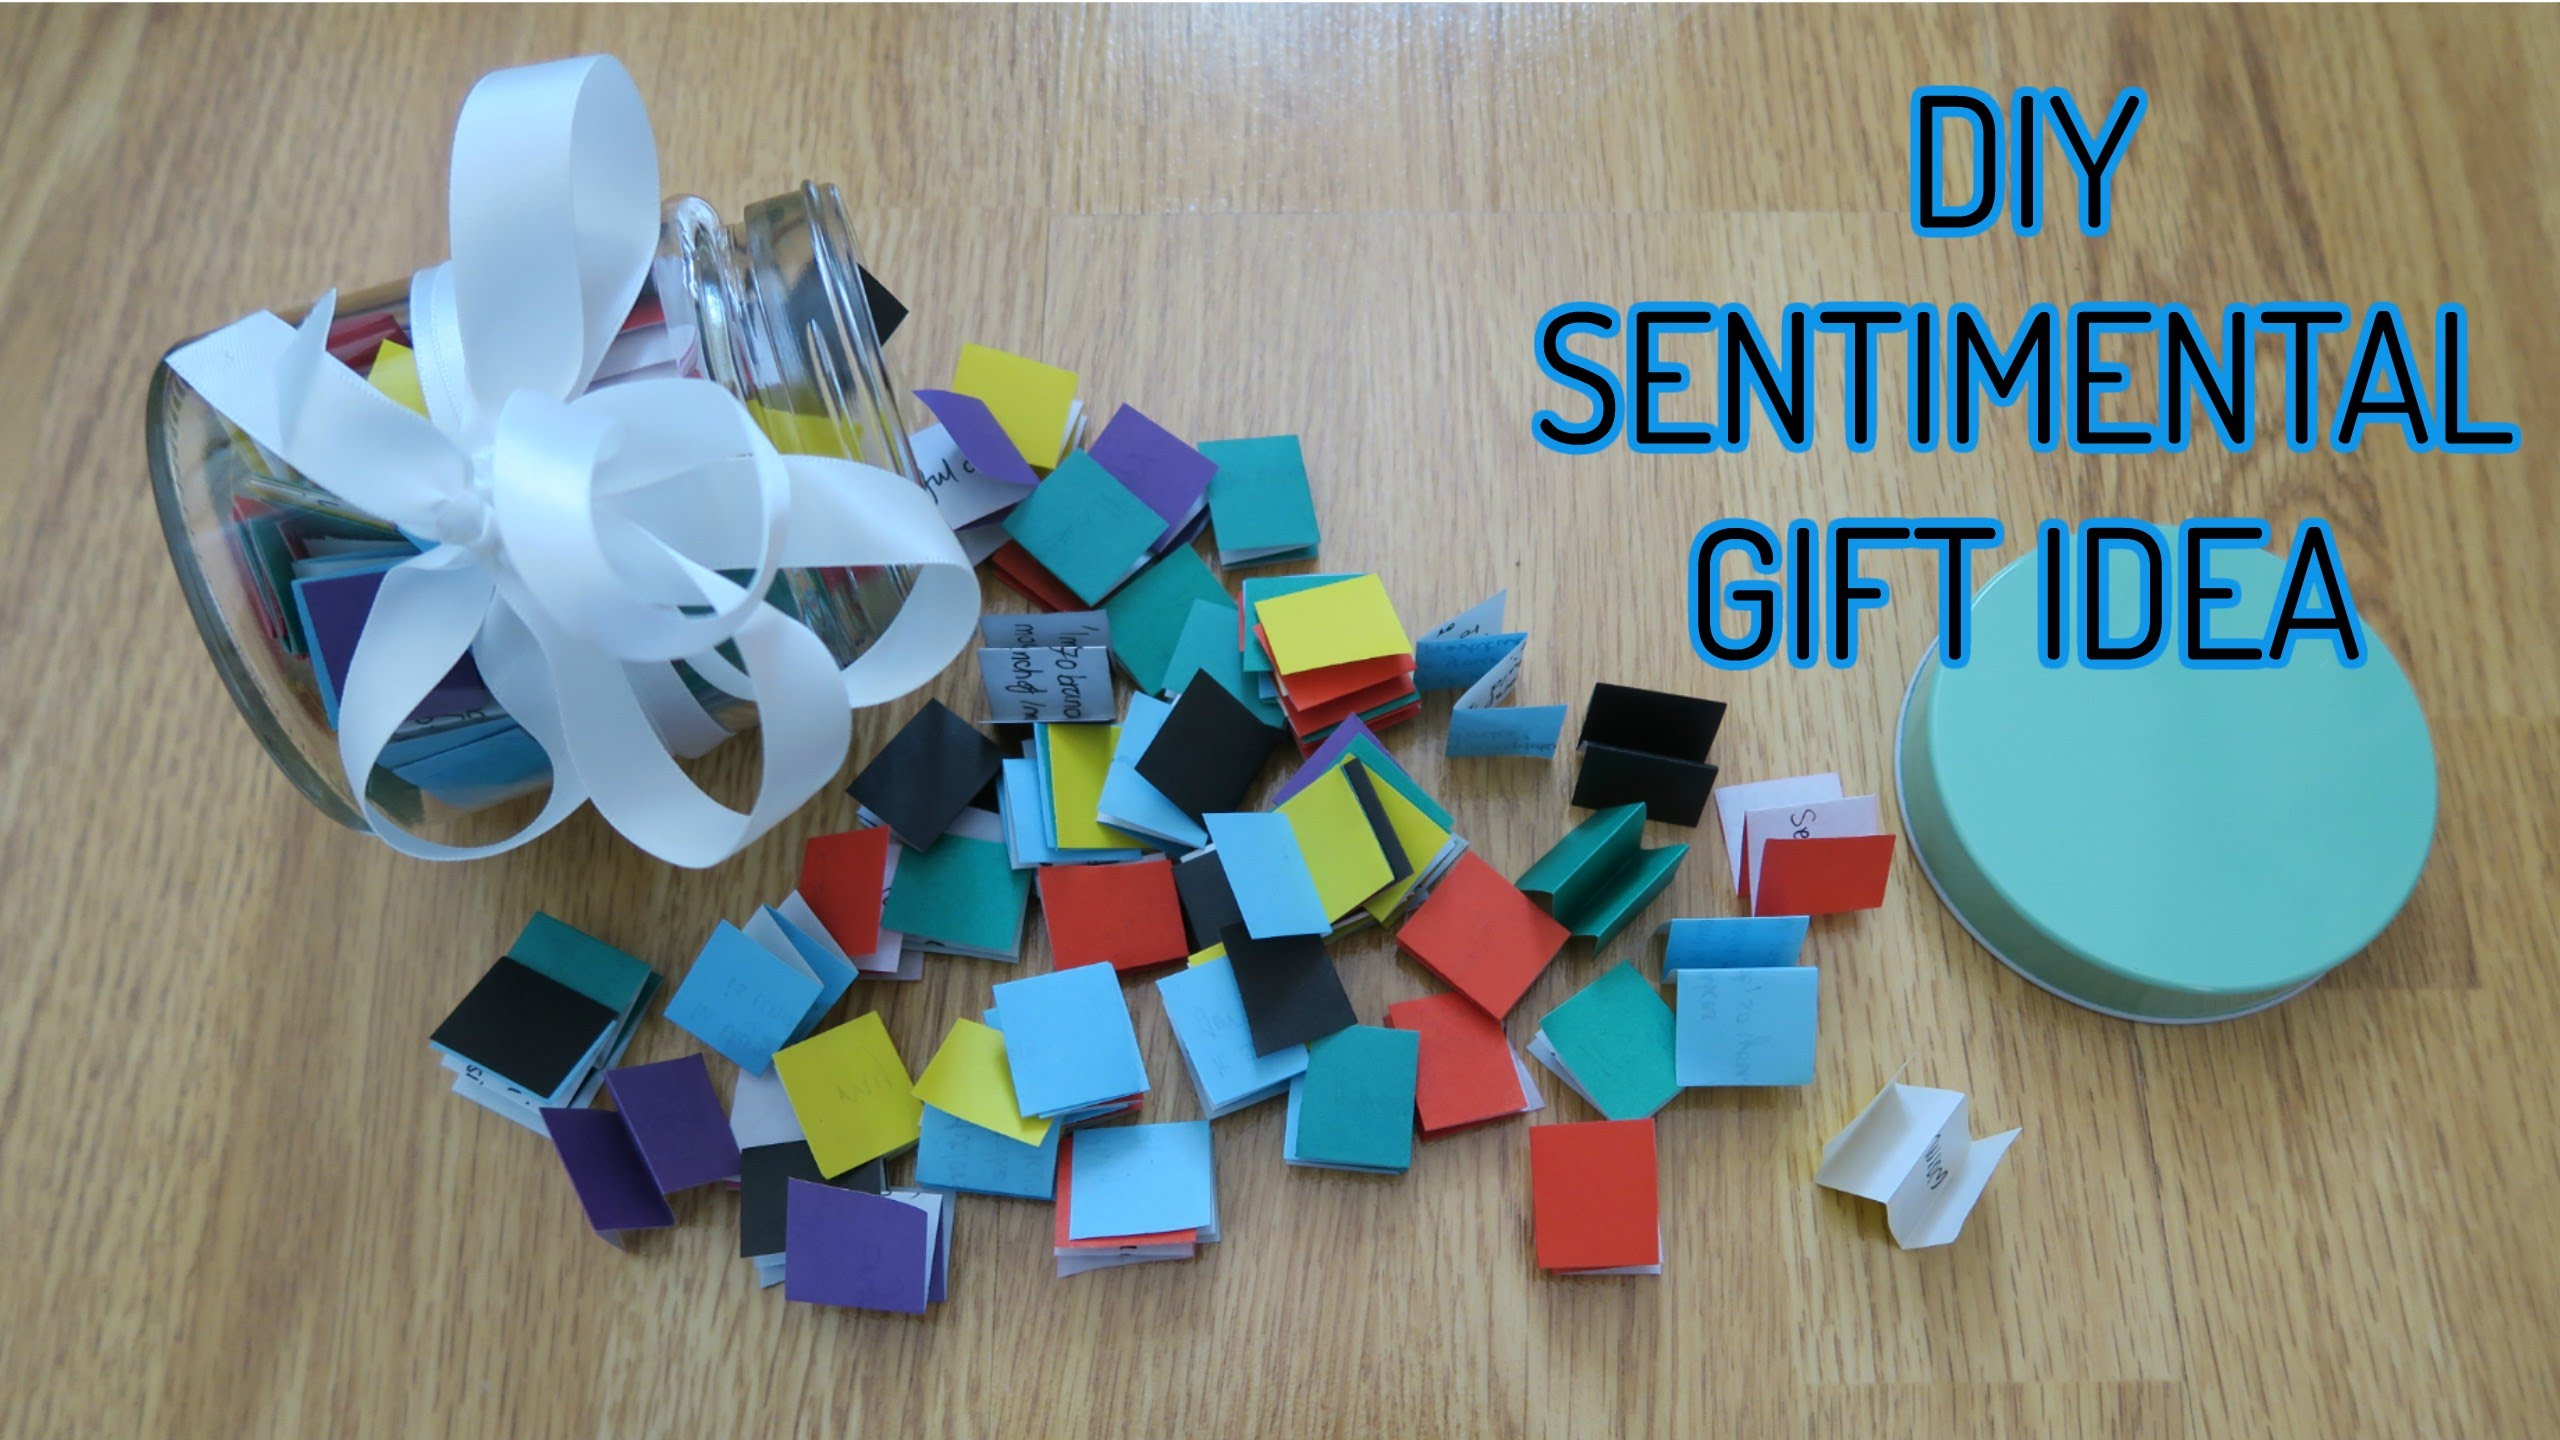 She makes a very sentimental gift for her friends and for Diy sentimental gifts